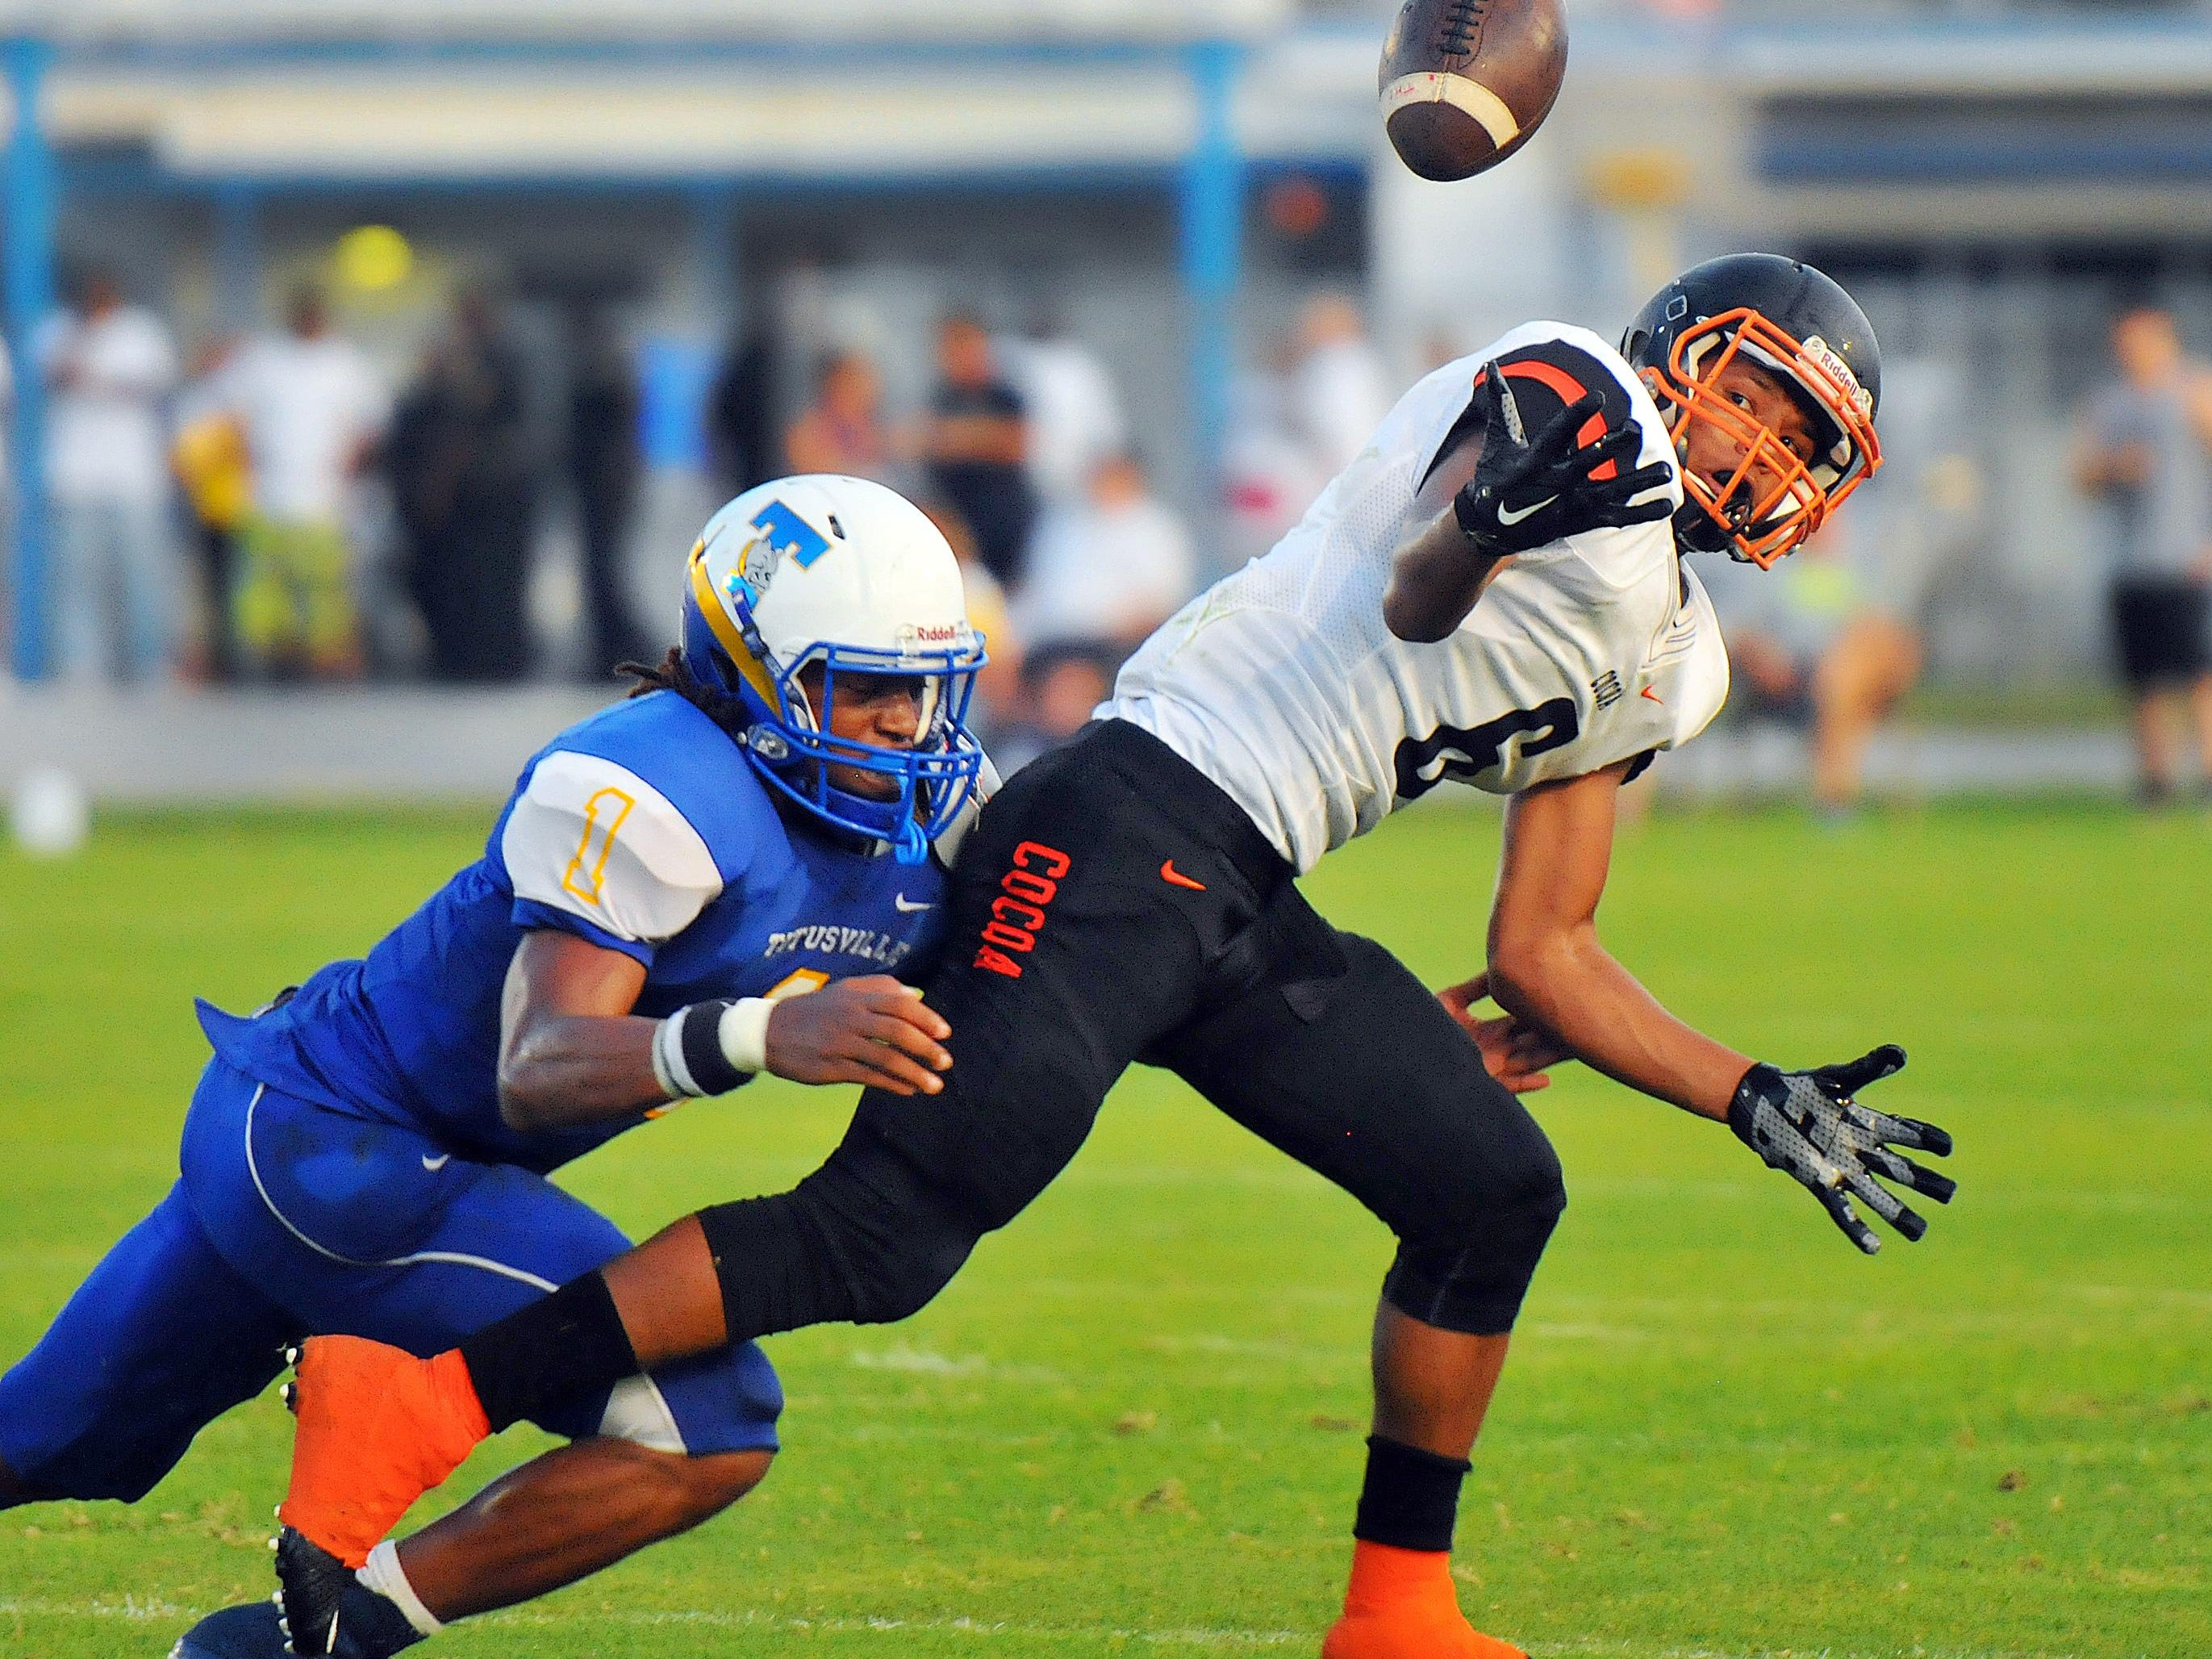 Cocoa High's John Smith (6) comes up with a fumble recovery after a hit on Titusville High quarterback Yusuf DeReese.